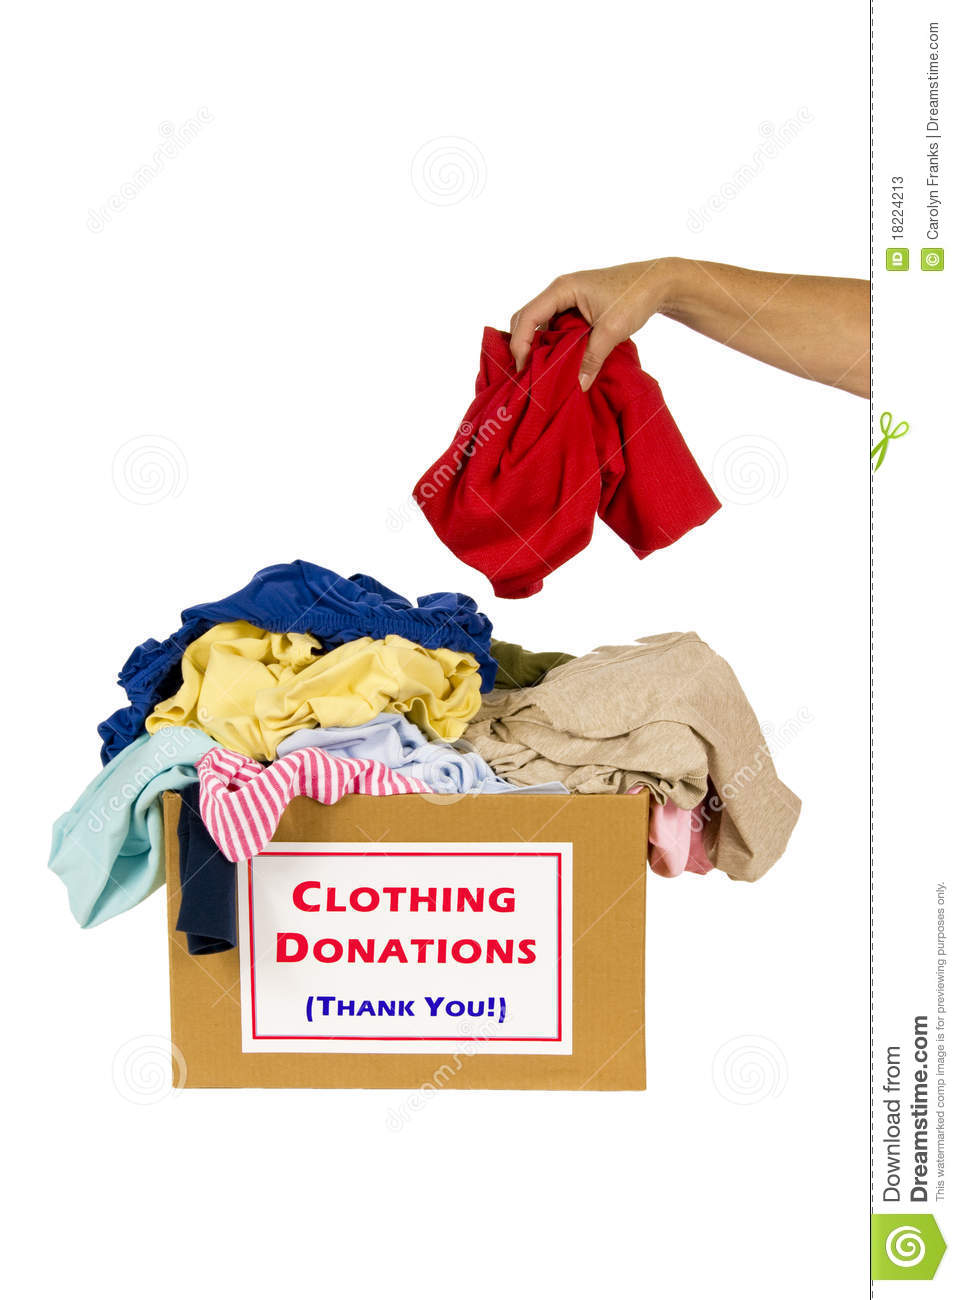 How to Donate Clothing to Charity